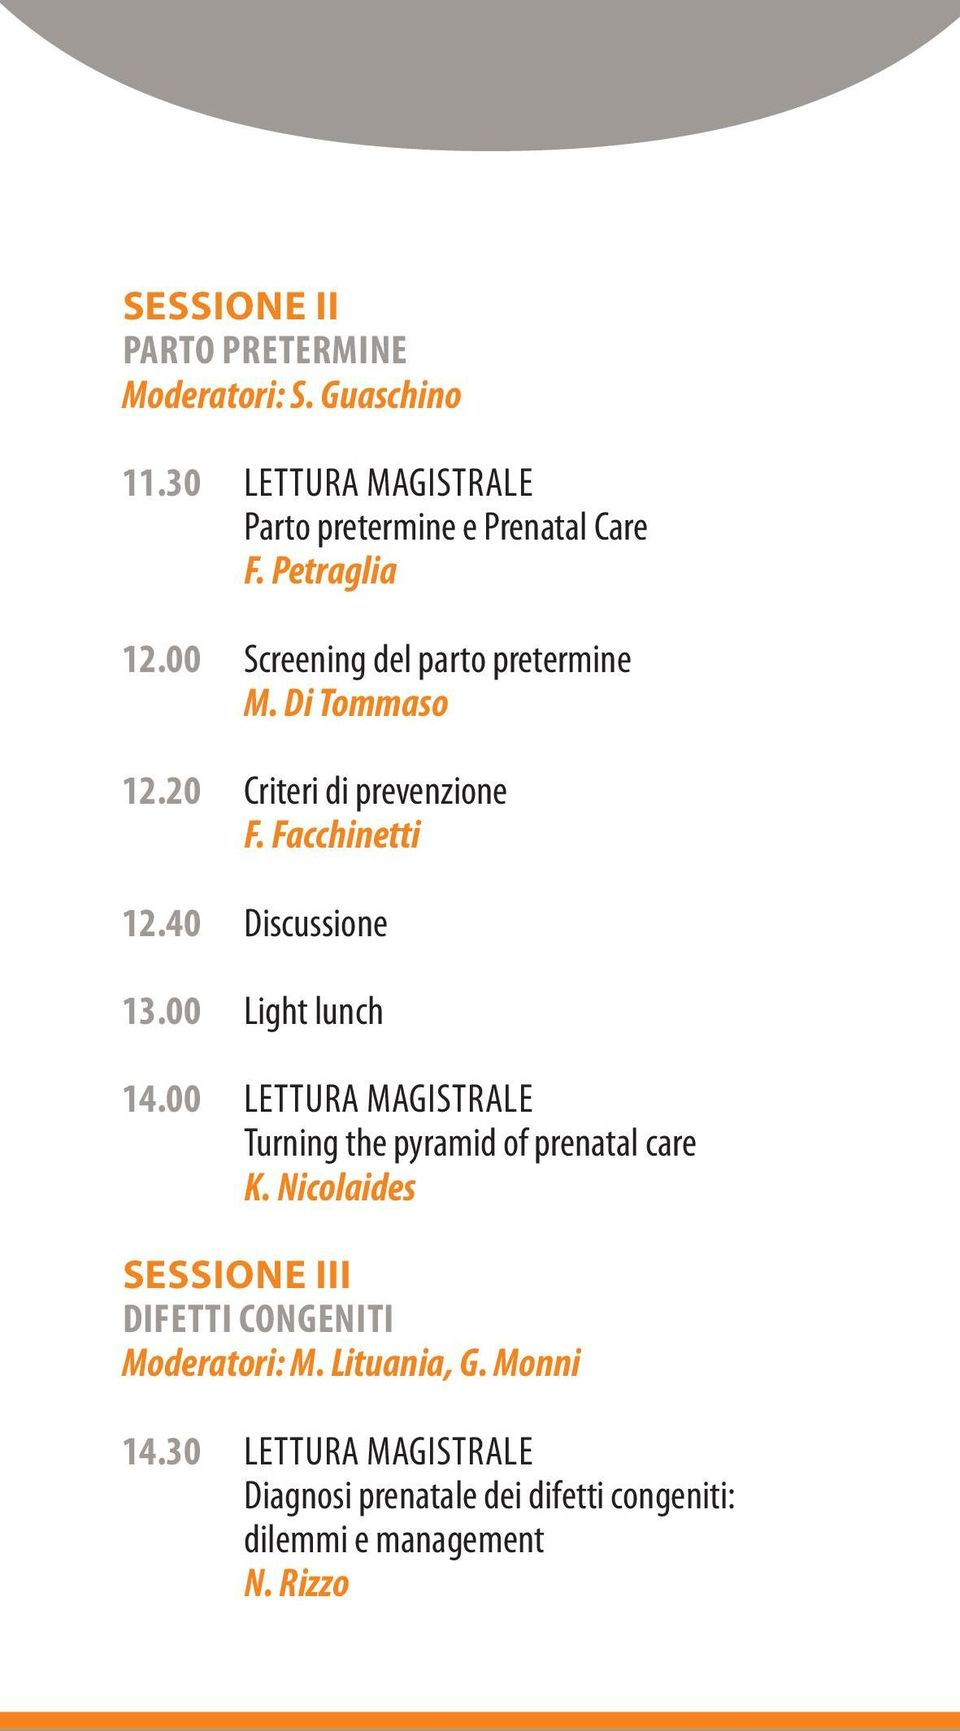 40 Discussione 13.00 Light lunch 14.00 LETTURA MAGISTRALE Turning the pyramid of prenatal care K.